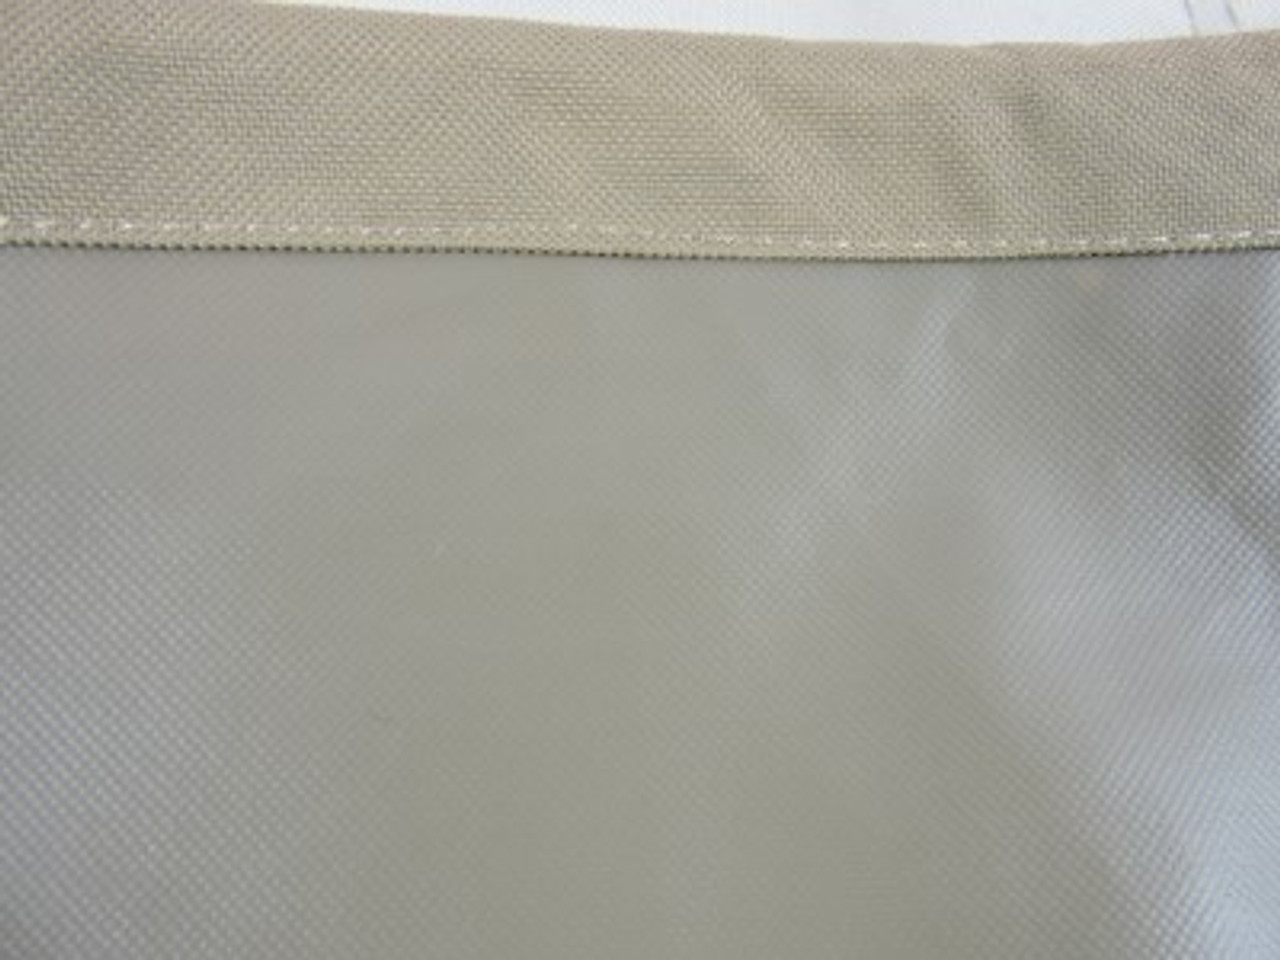 Savanna waterproof inner vinyl layer